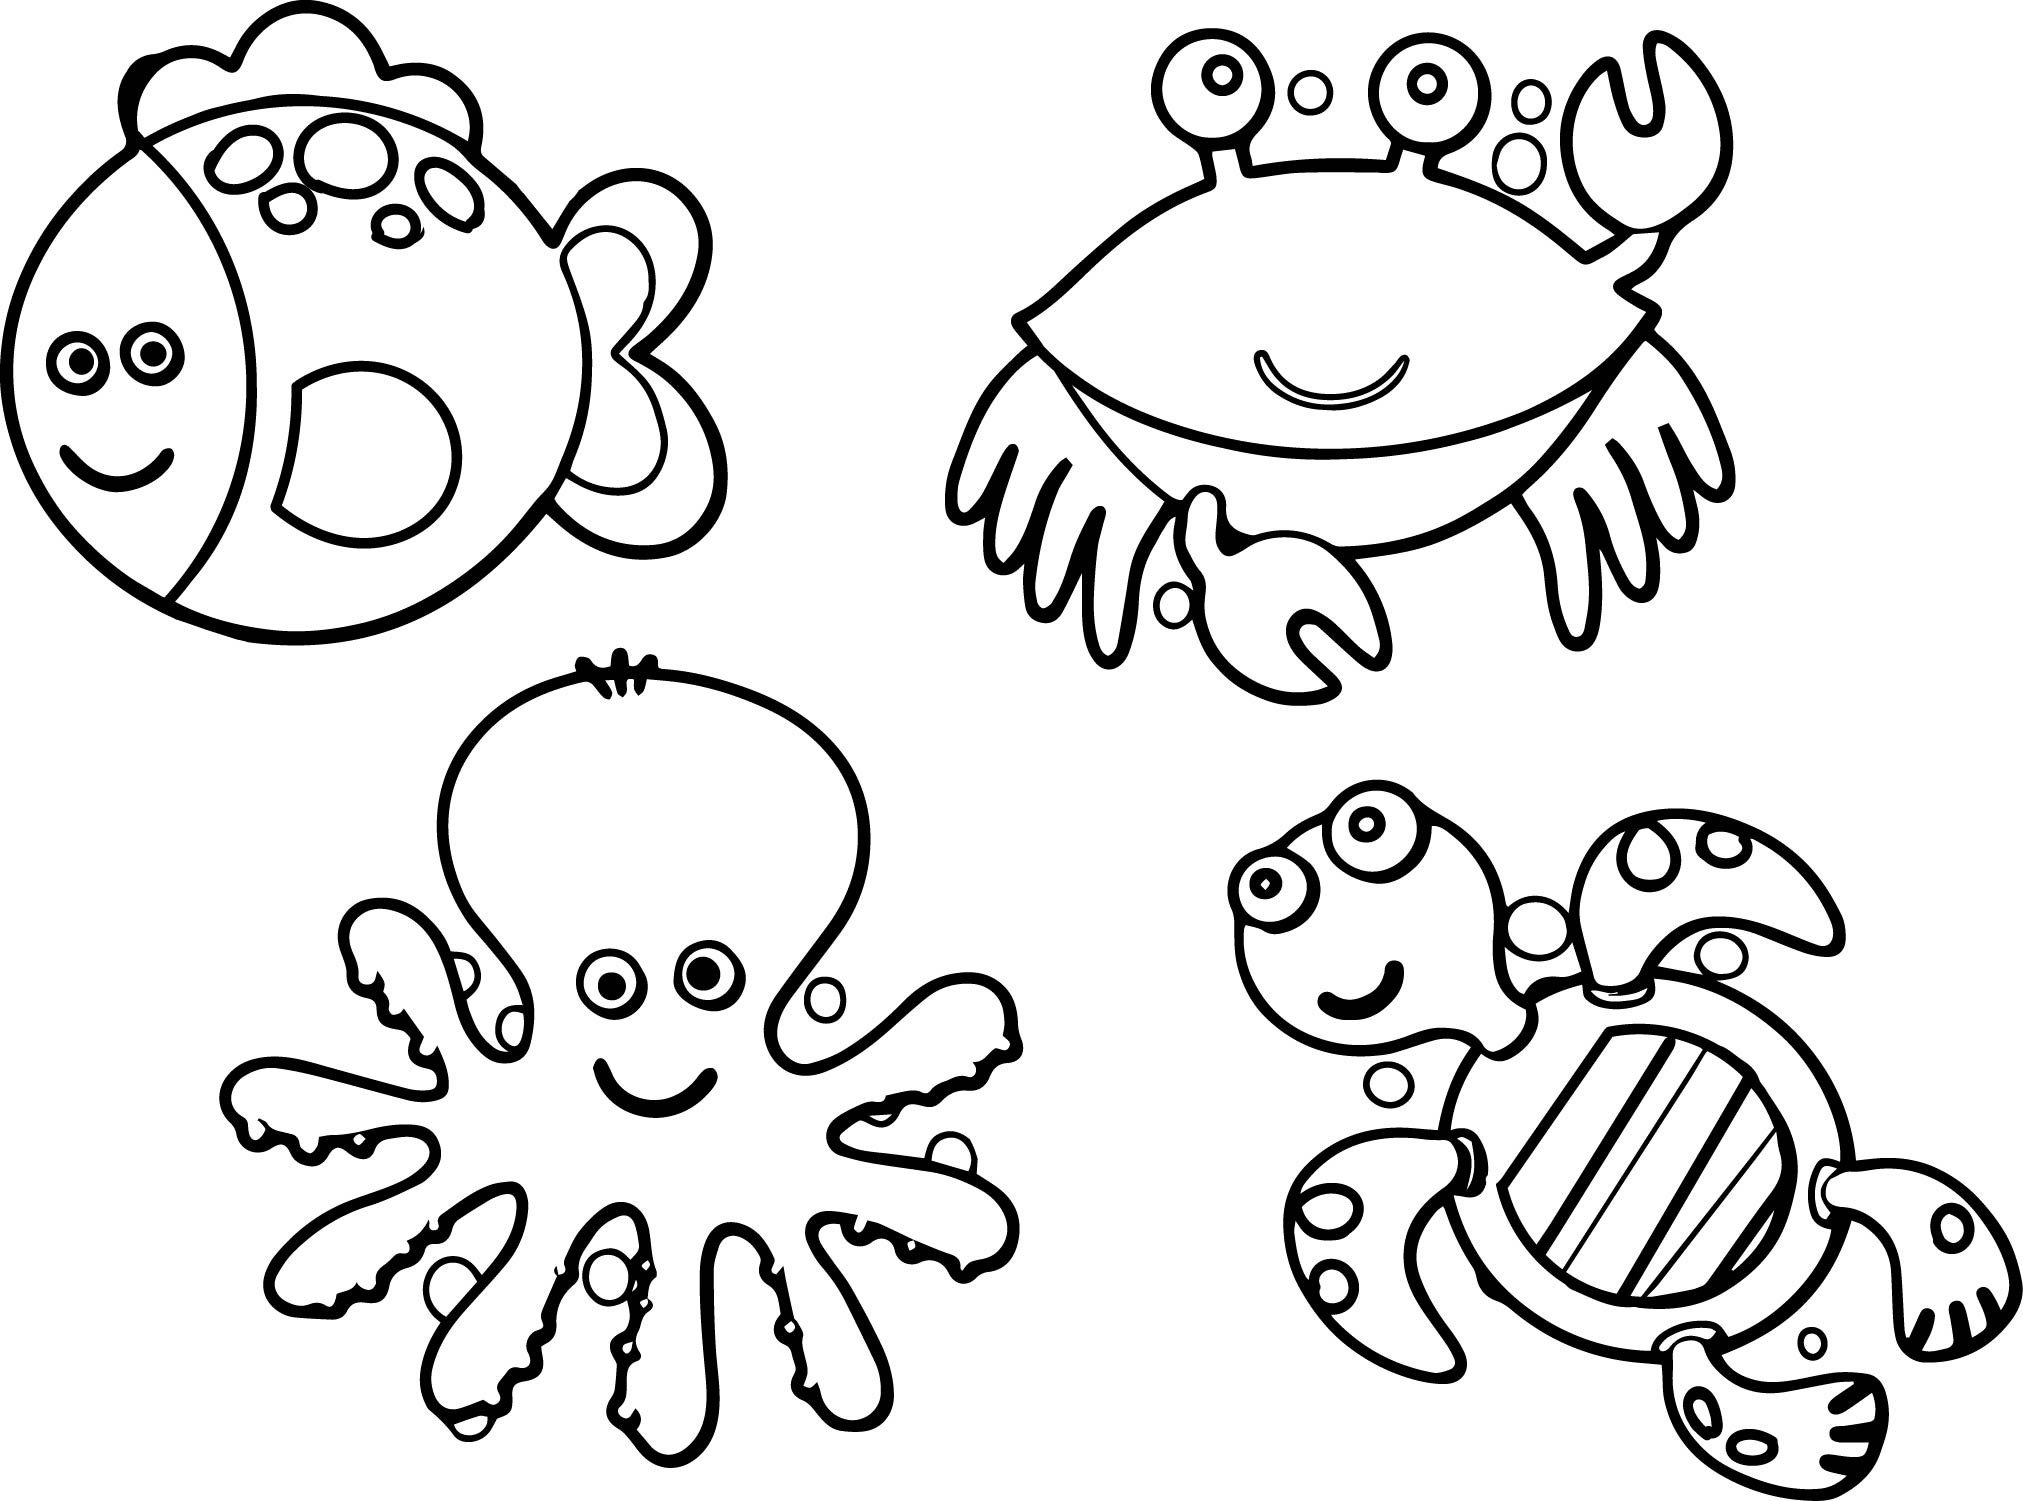 ocean wildlife coloring pages - photo #36